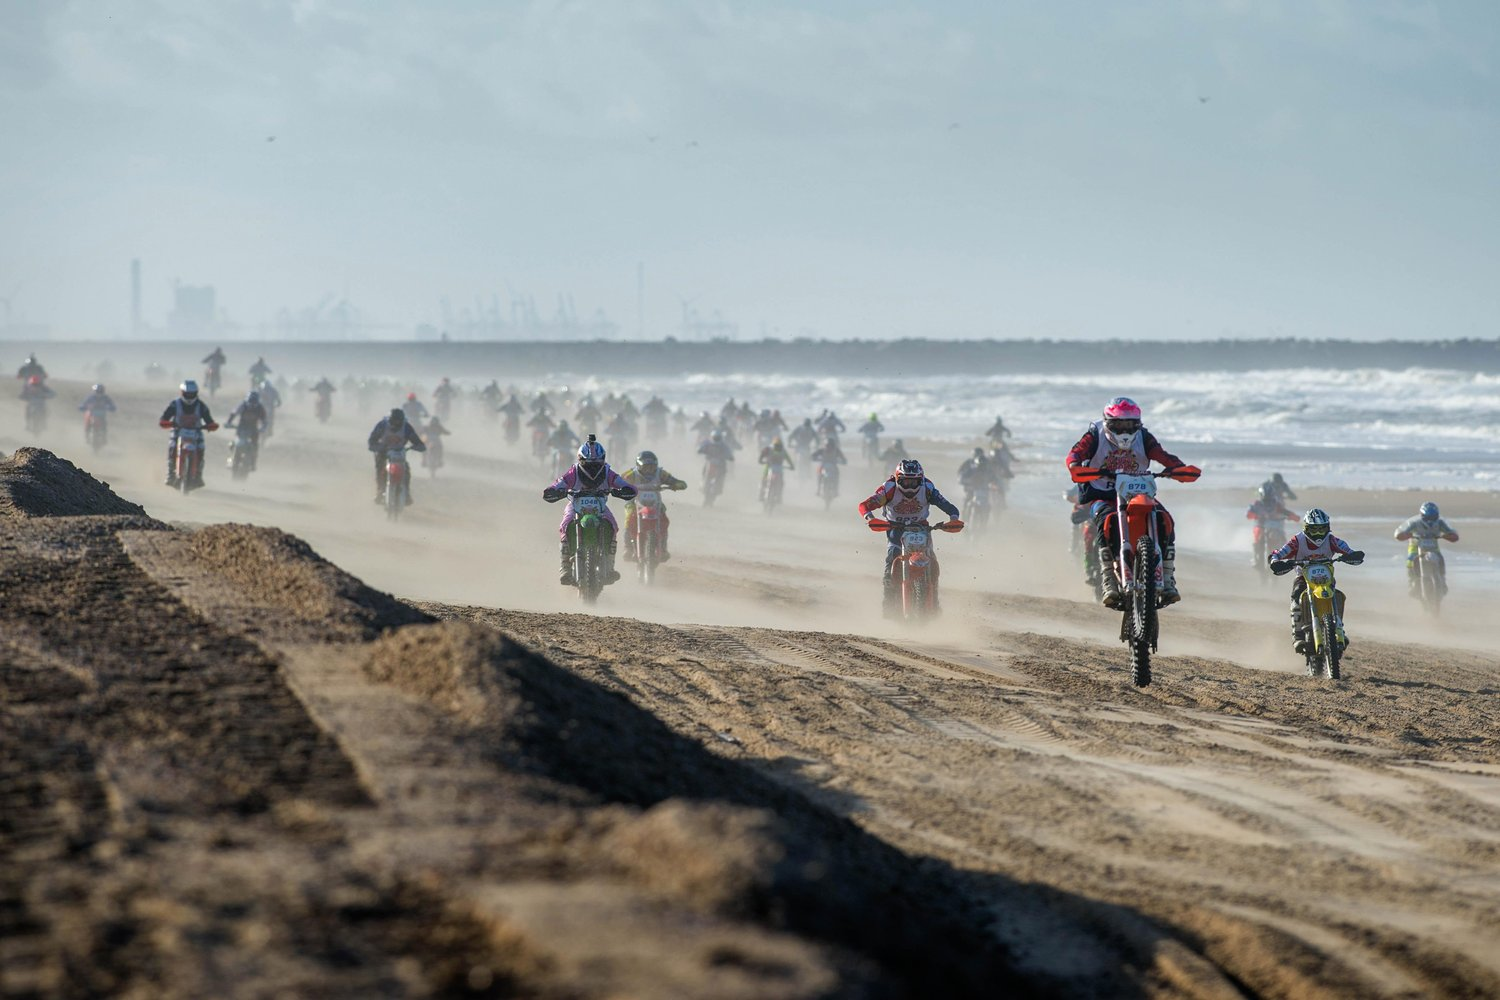 riders-charge-at-the-start-of-the-red-bull-knock-out-beach-race-in-the-hague-netherlands.jpg